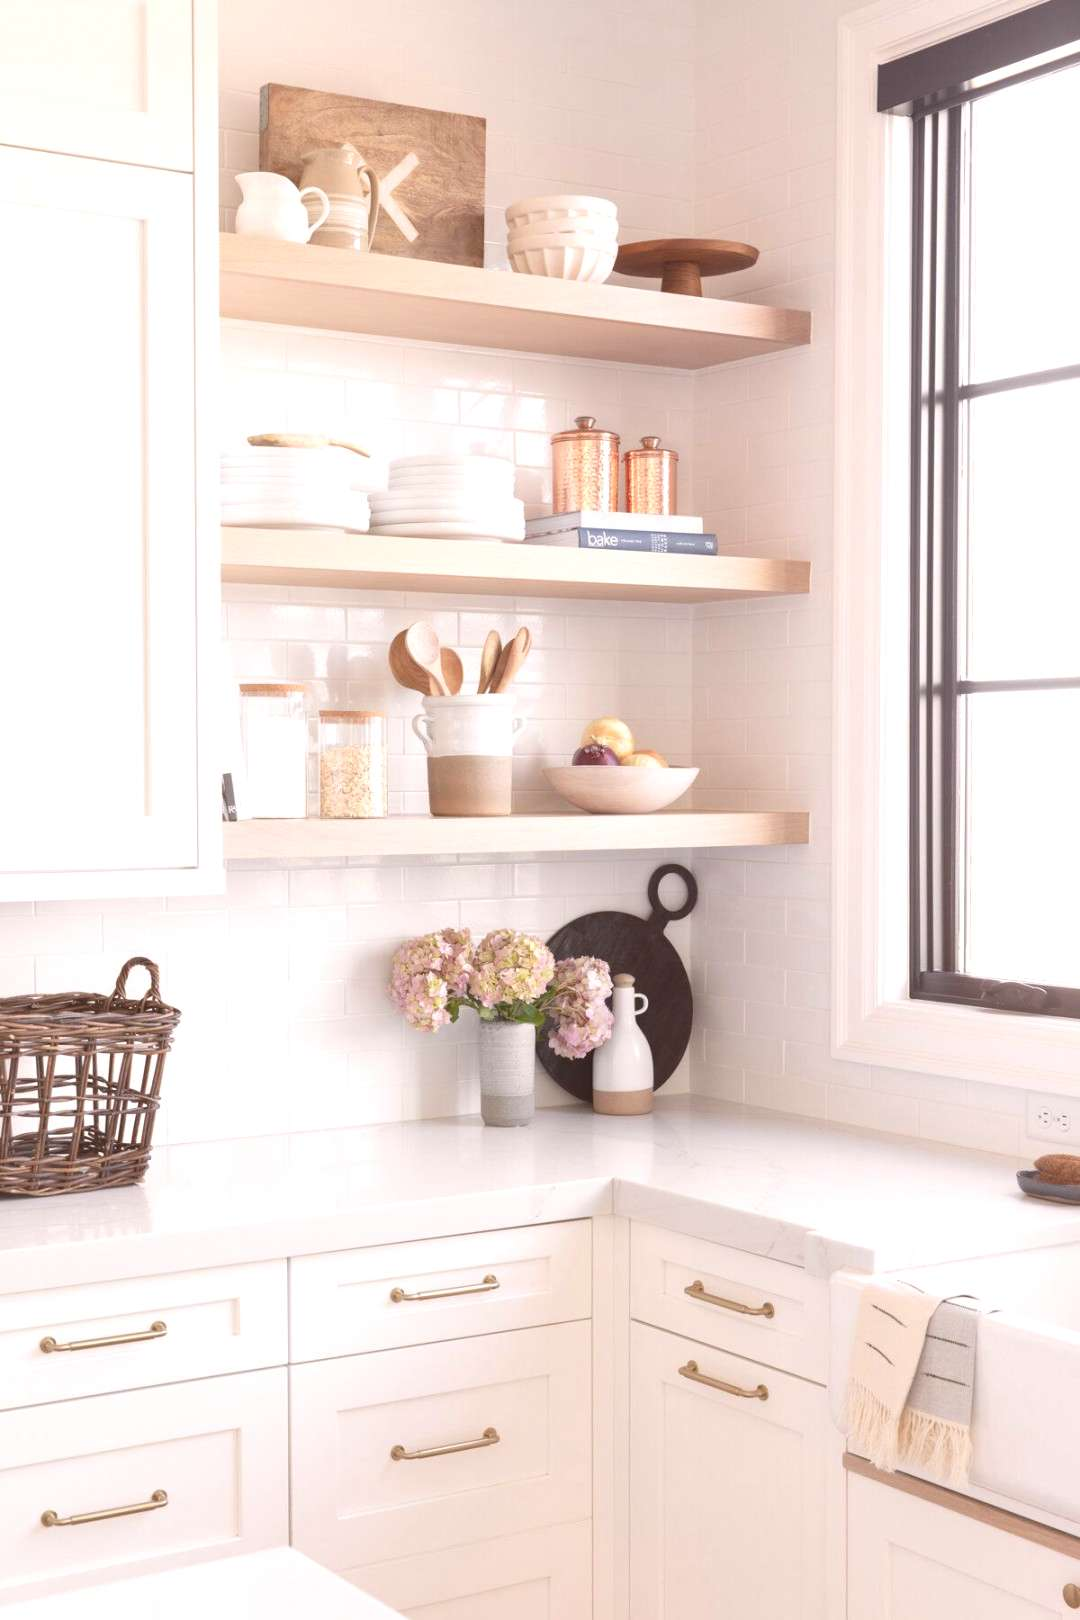 Neutral white and wood kitchen